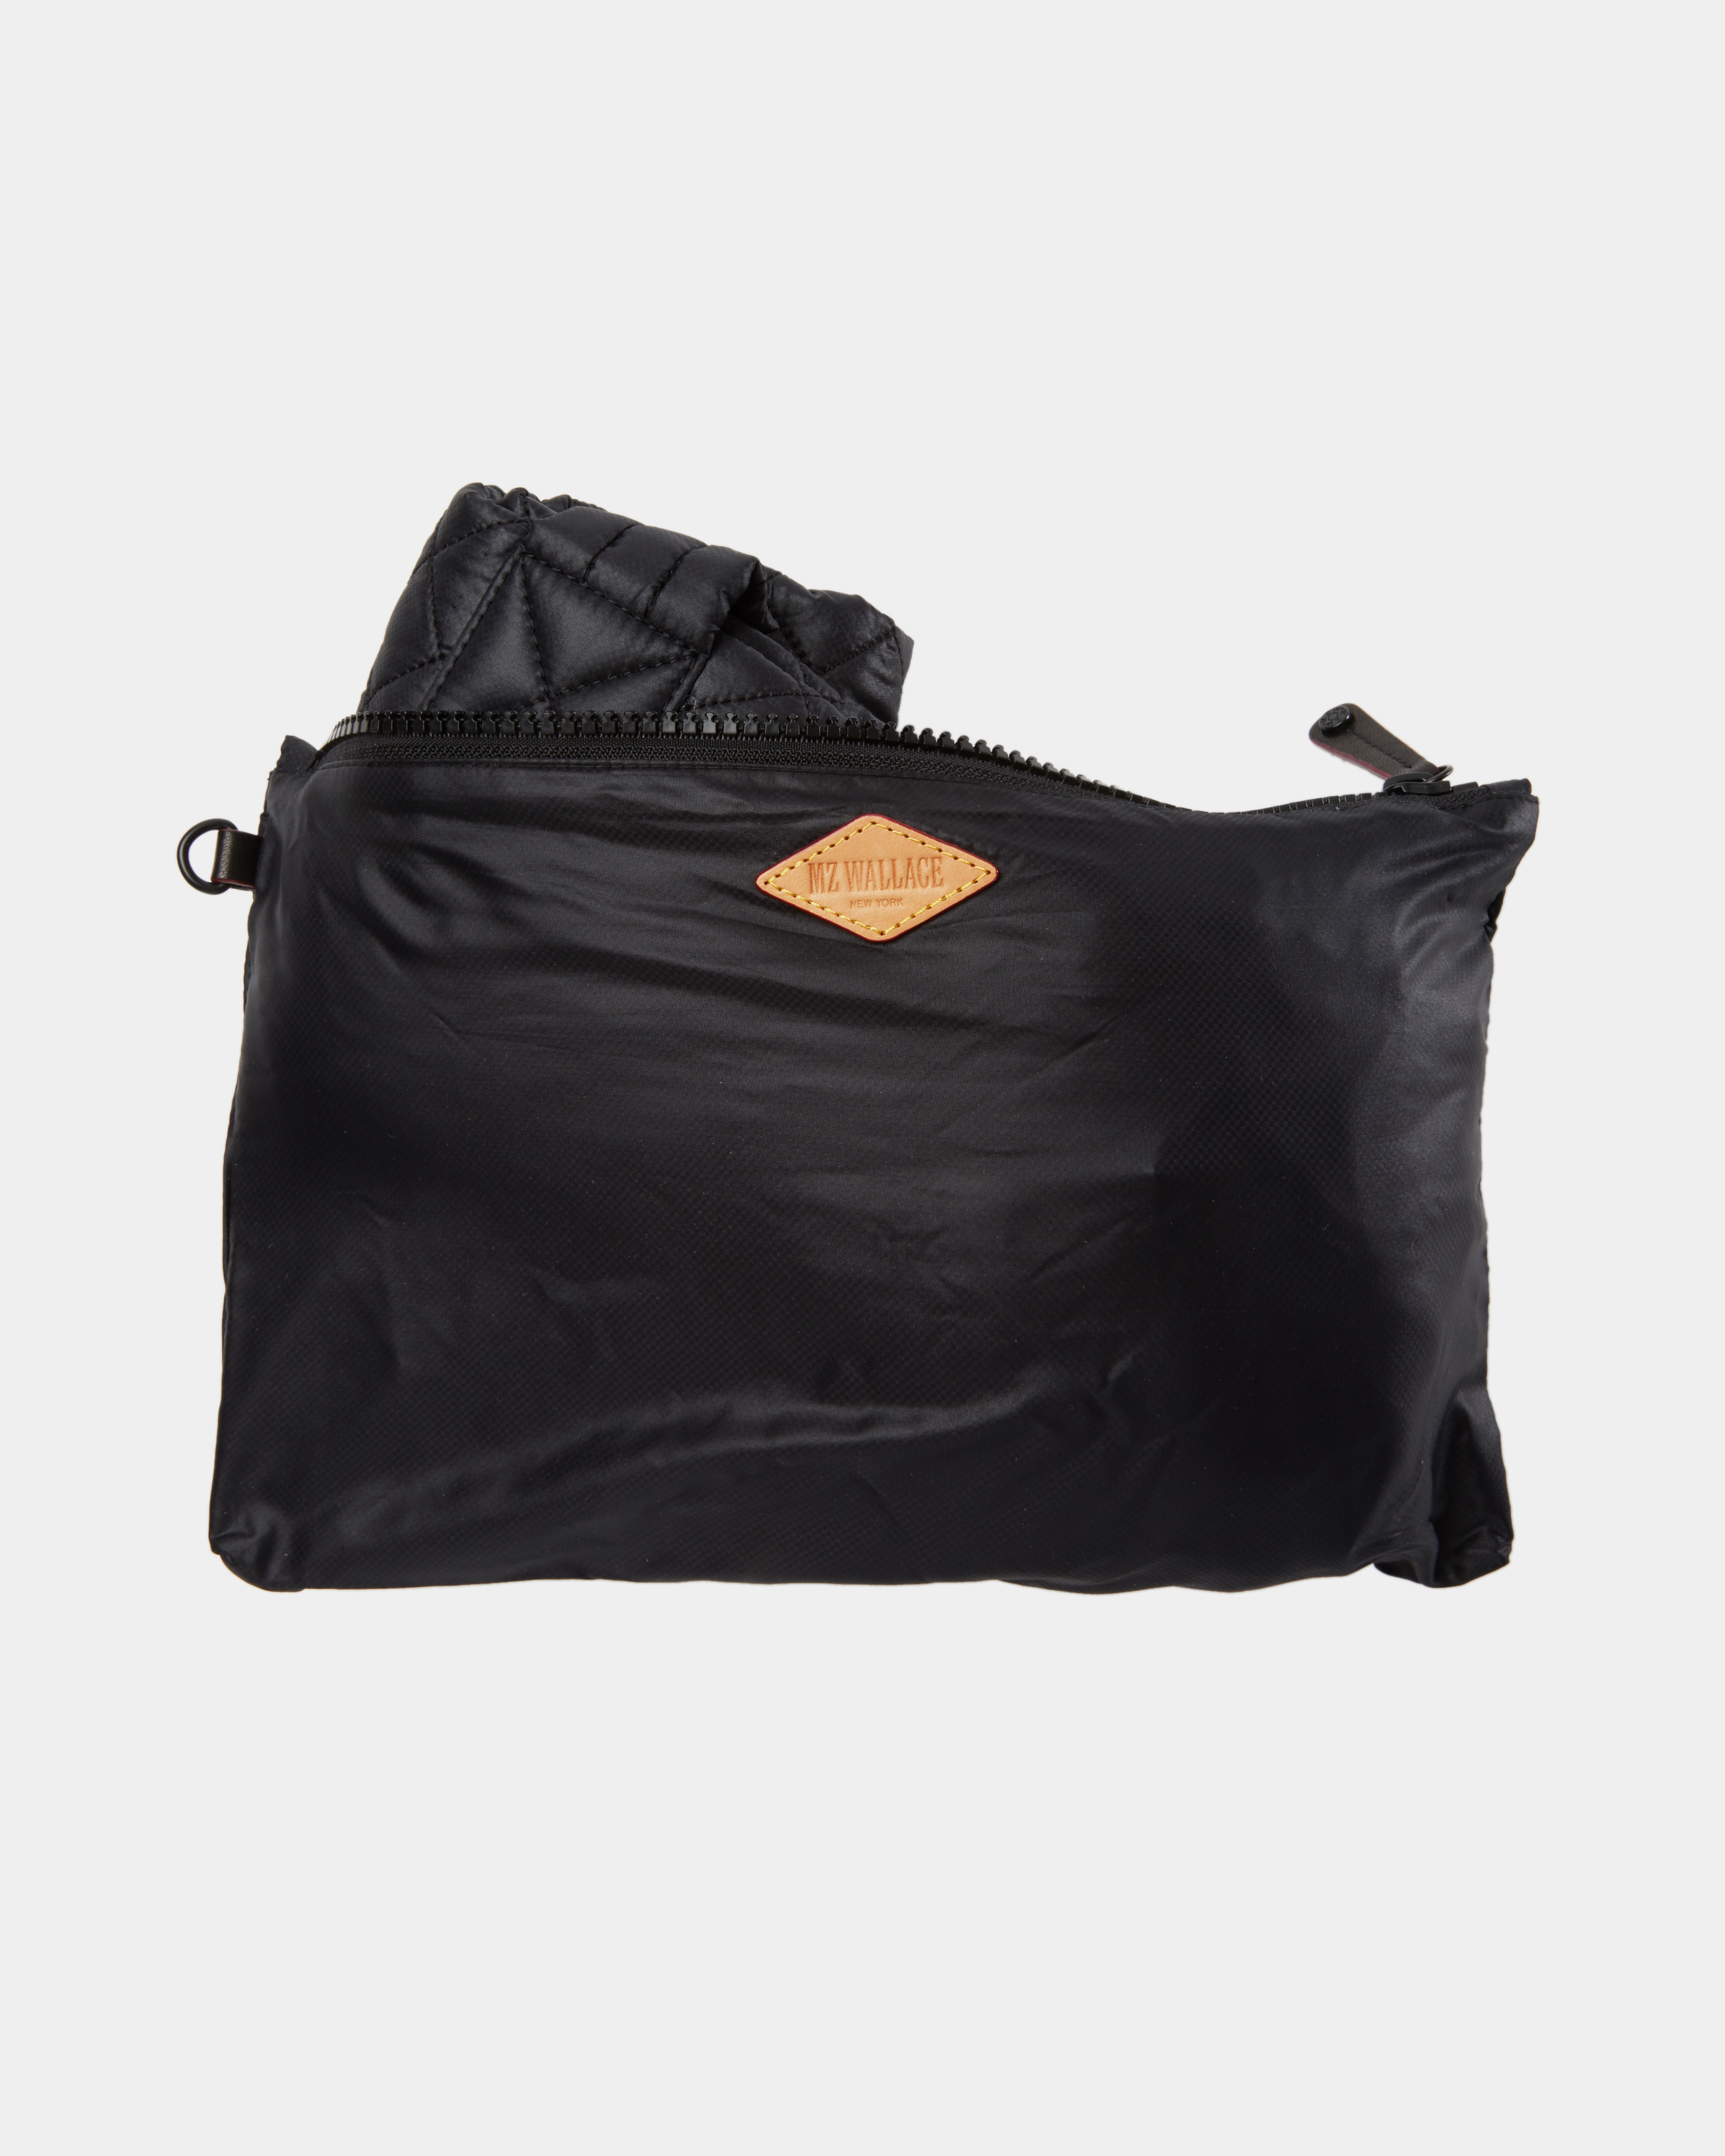 Small Metro Tote - Black Quilted Oxford Nylon (3700108) in color Black